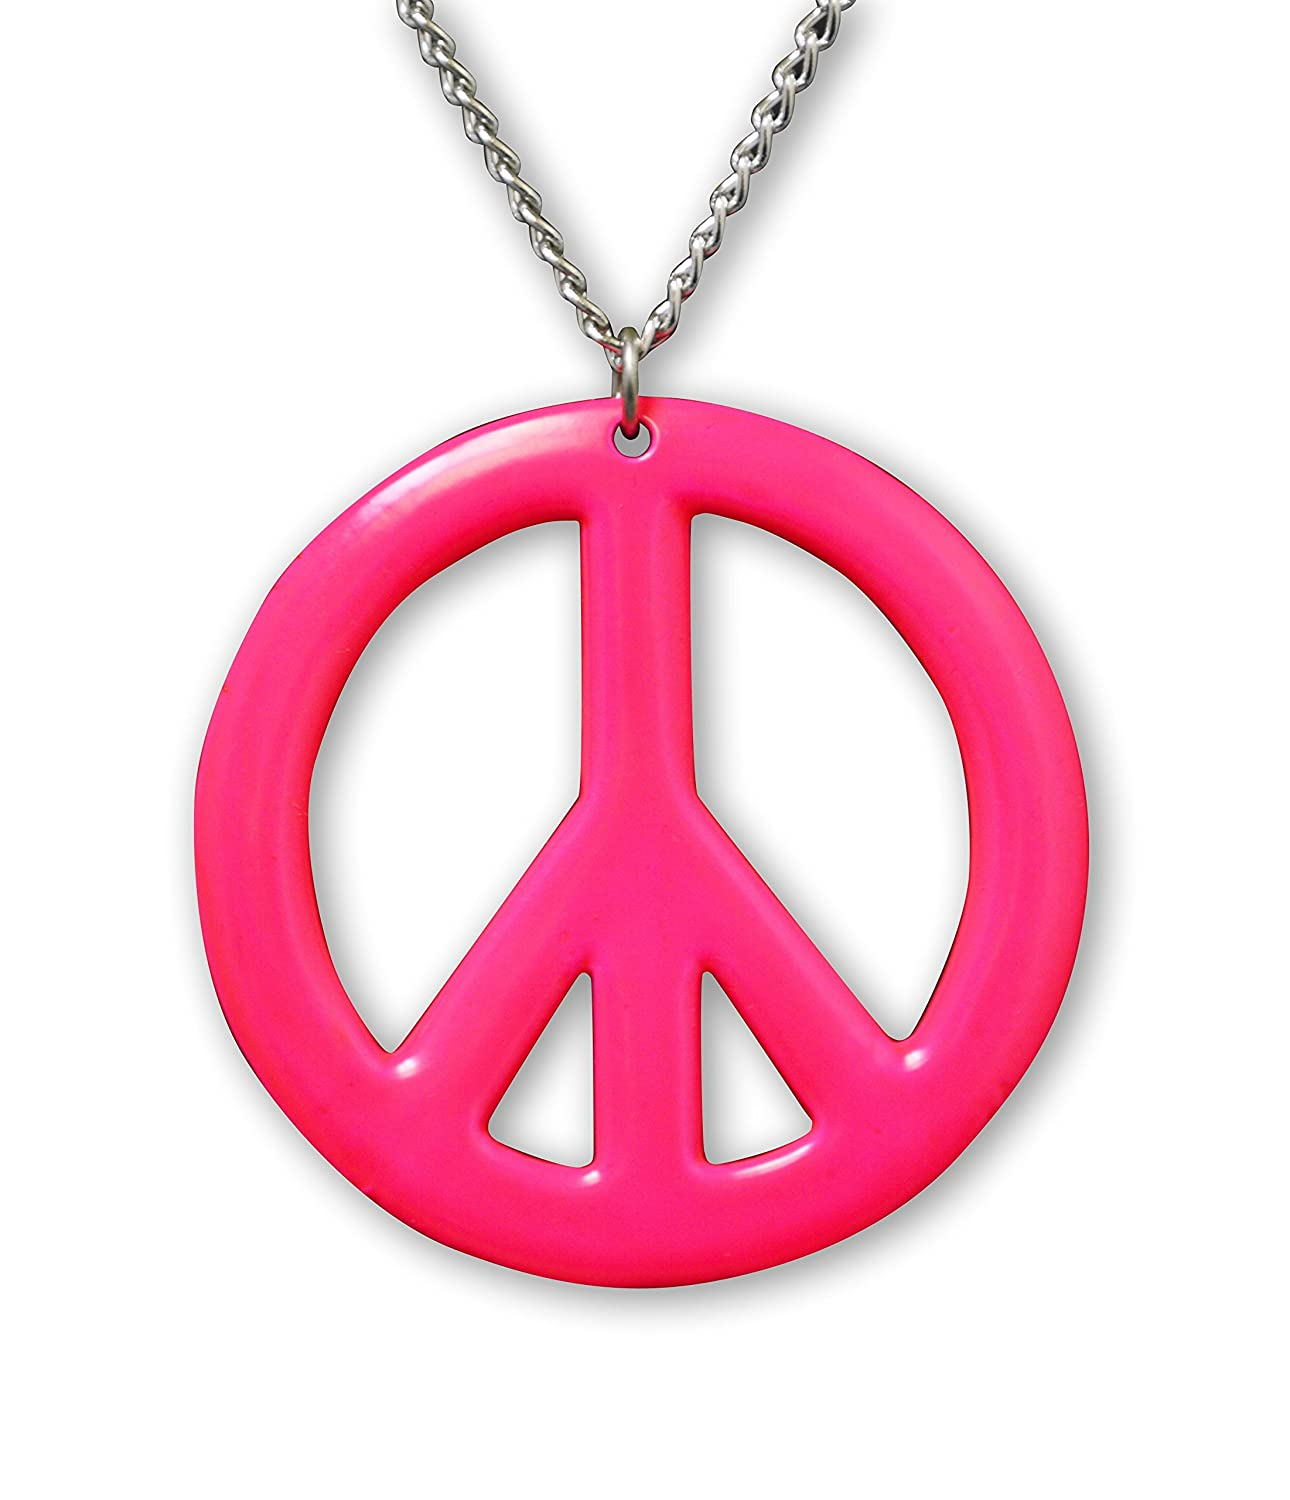 Amazon hot pink hippie peace sign pendant necklace enamel on amazon hot pink hippie peace sign pendant necklace enamel on pewter cosplay jewelry jewelry mozeypictures Choice Image